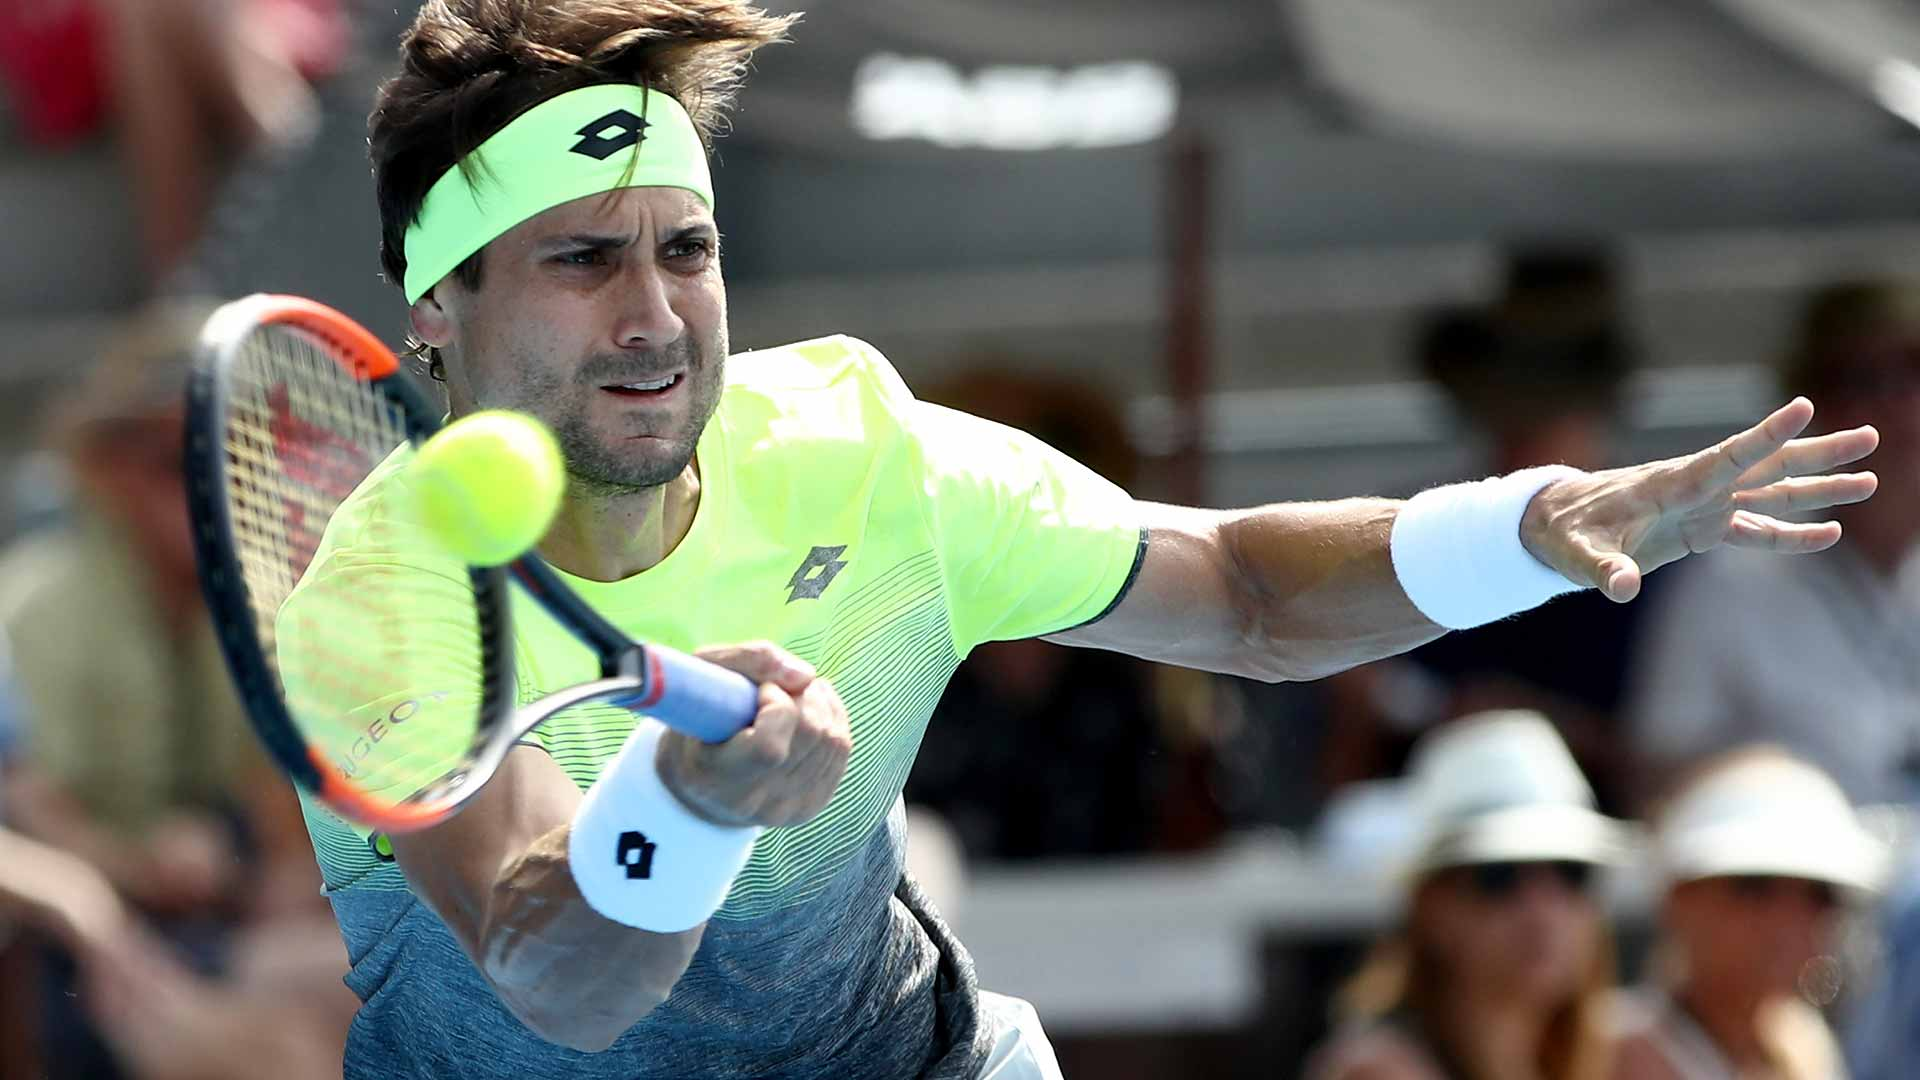 Is time for a high-✋ for David Ferrer at the @ASB_Classic in Auckland?  Read More: https://t.co/JyCLl1oThn #ATP https://t.co/sAgaDNnUya